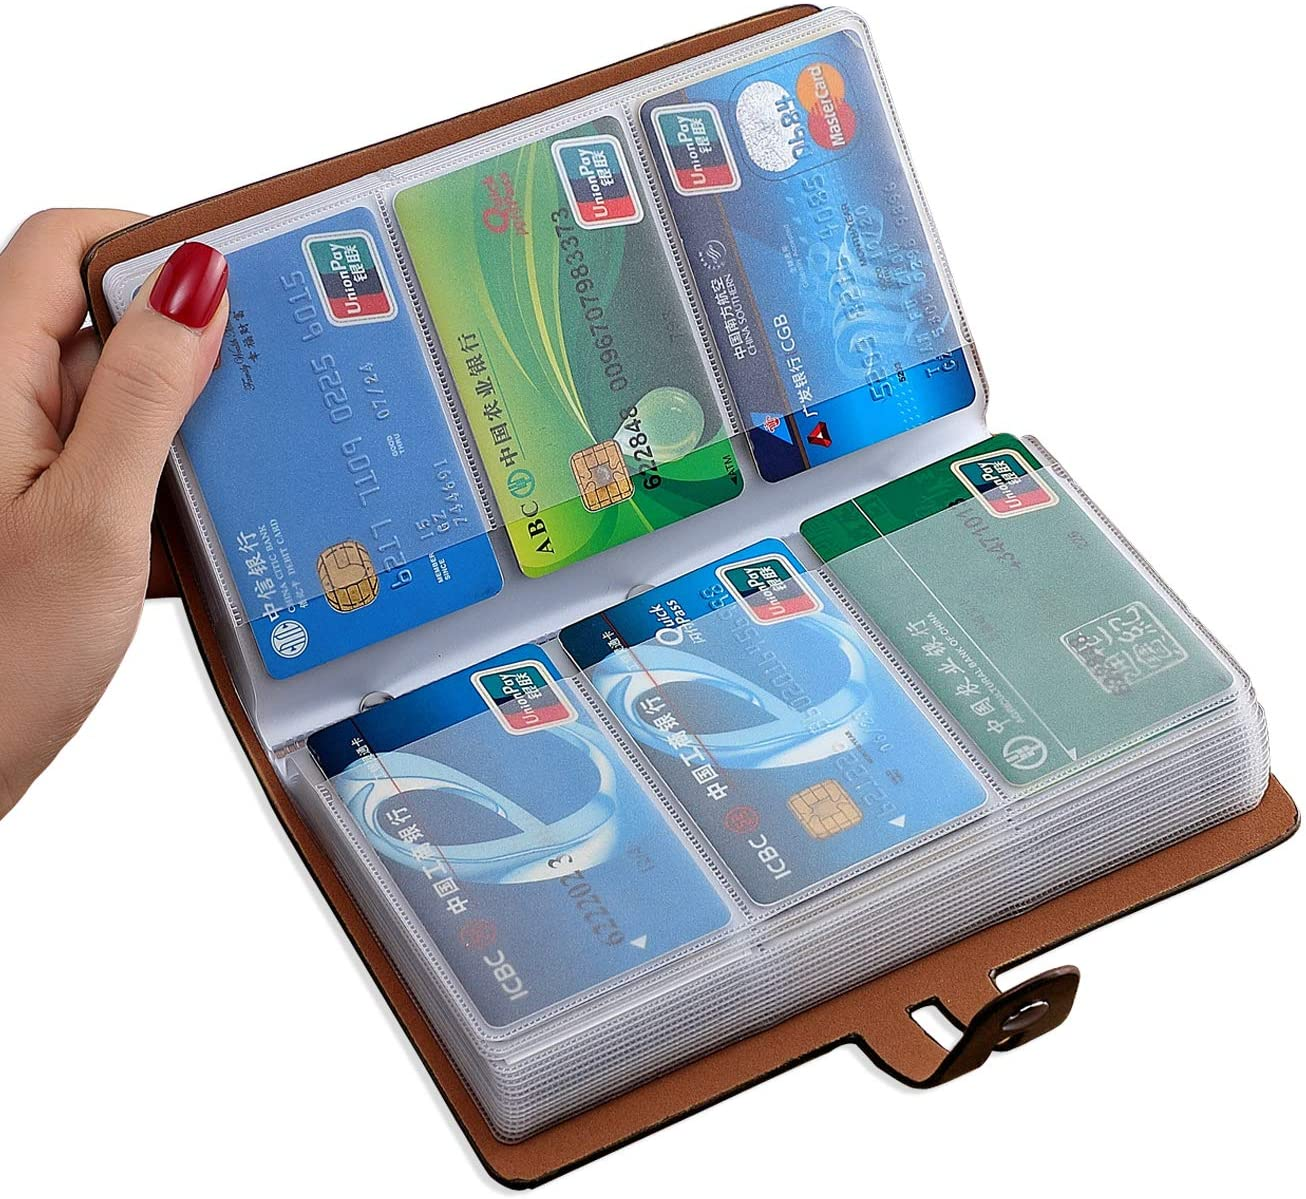 RFID Credit Card Holder, Leather Business Card Organizer with 96 Card Slots, Credit Card Protector for Managing Your Different Cards and Important Documents to Prevent Loss or Damage (Brown)